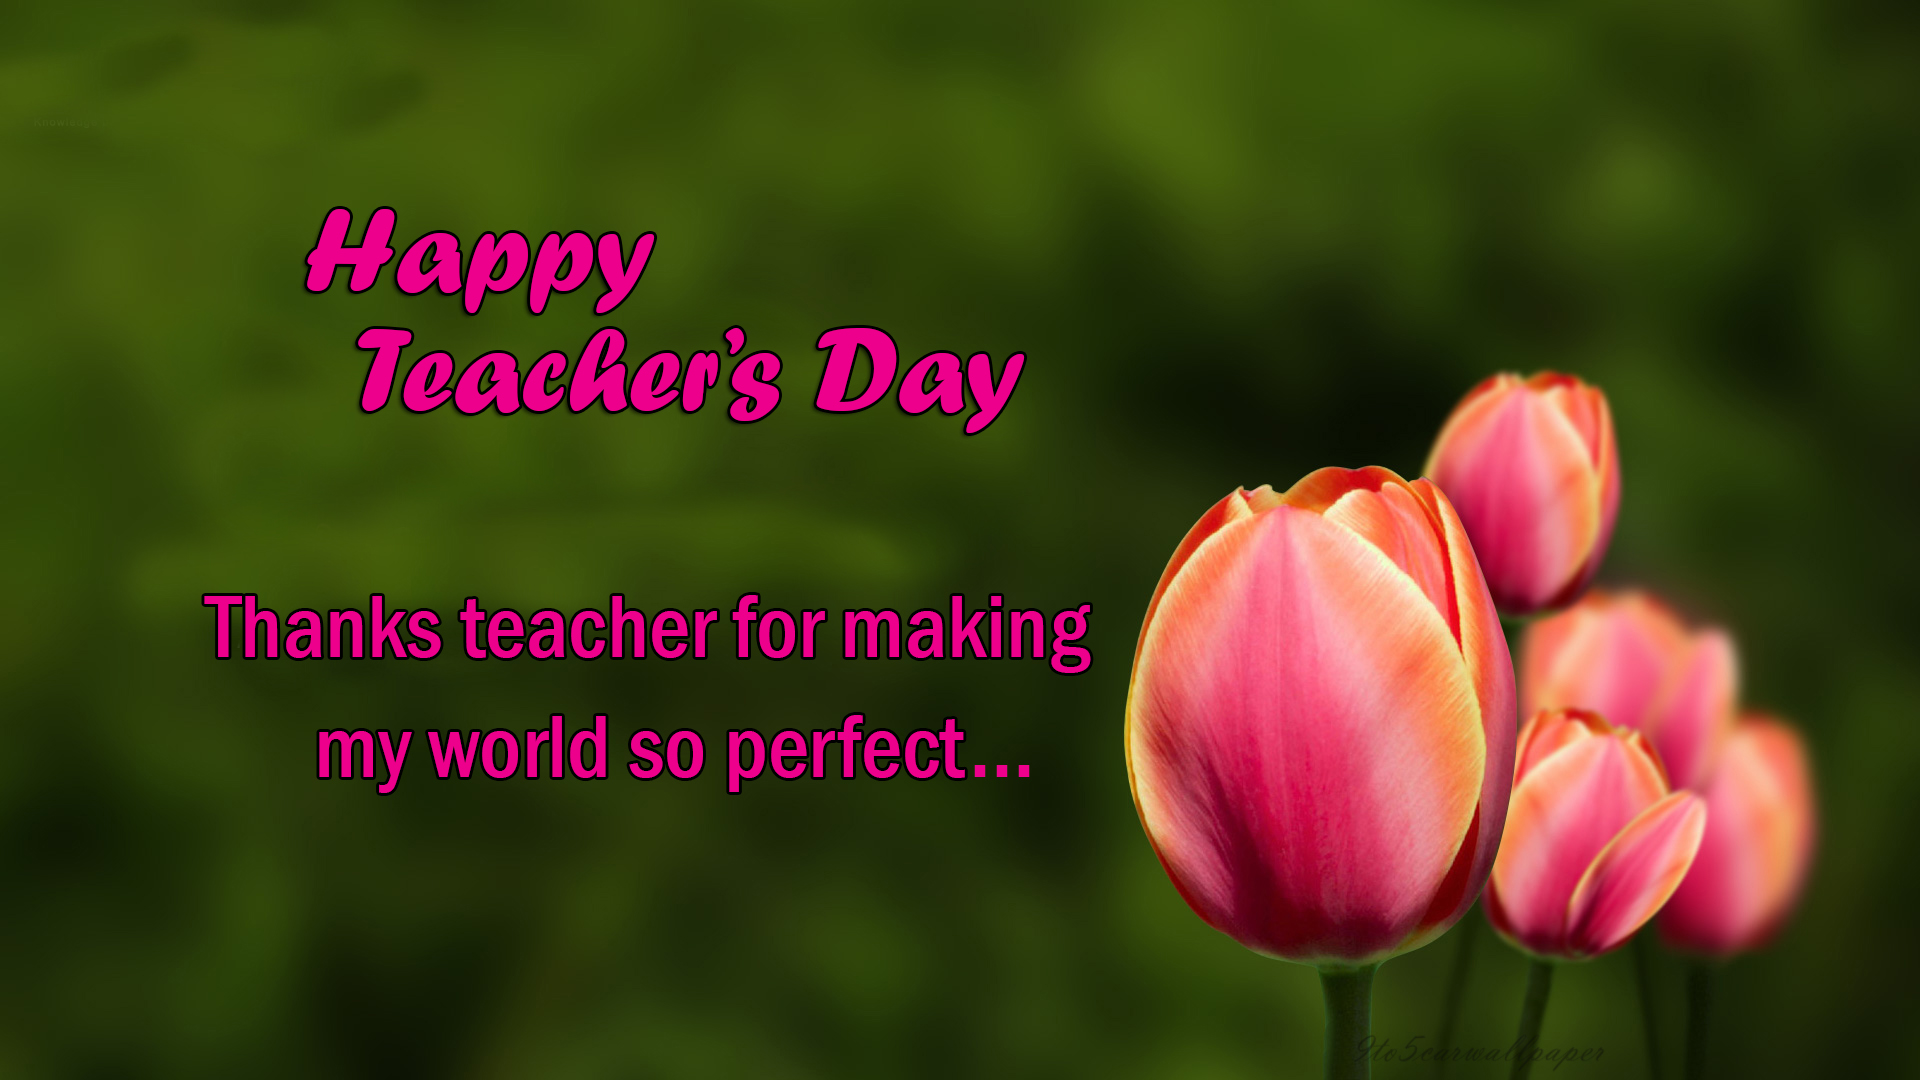 happy-teachers-day-sms-images-qoutes-wallpapers-wishes-2017